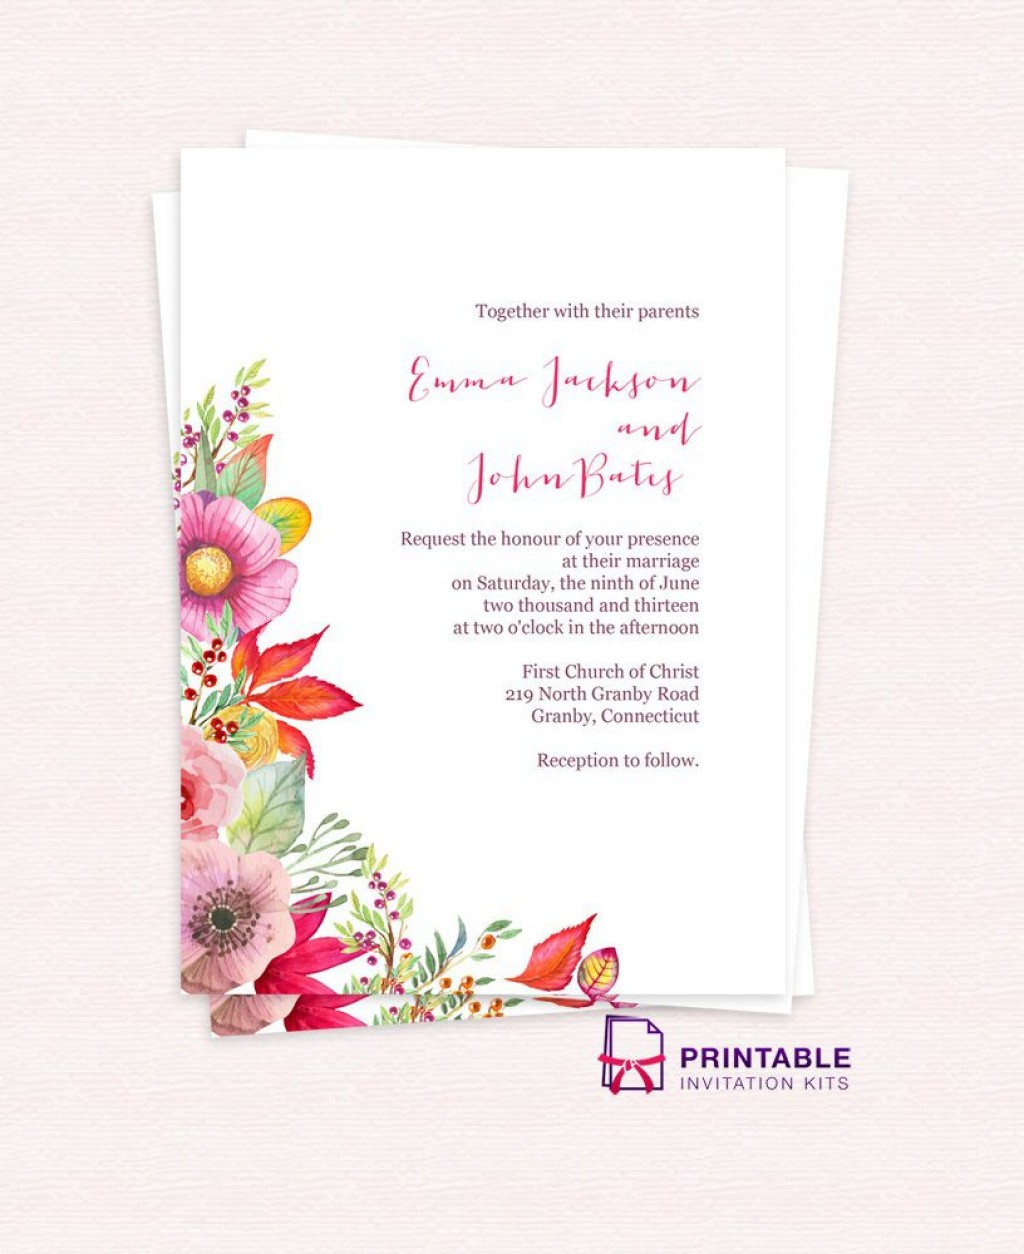 003 Wonderful Free Download Marriage Invitation Template High Def  Card Design Psd After EffectLarge